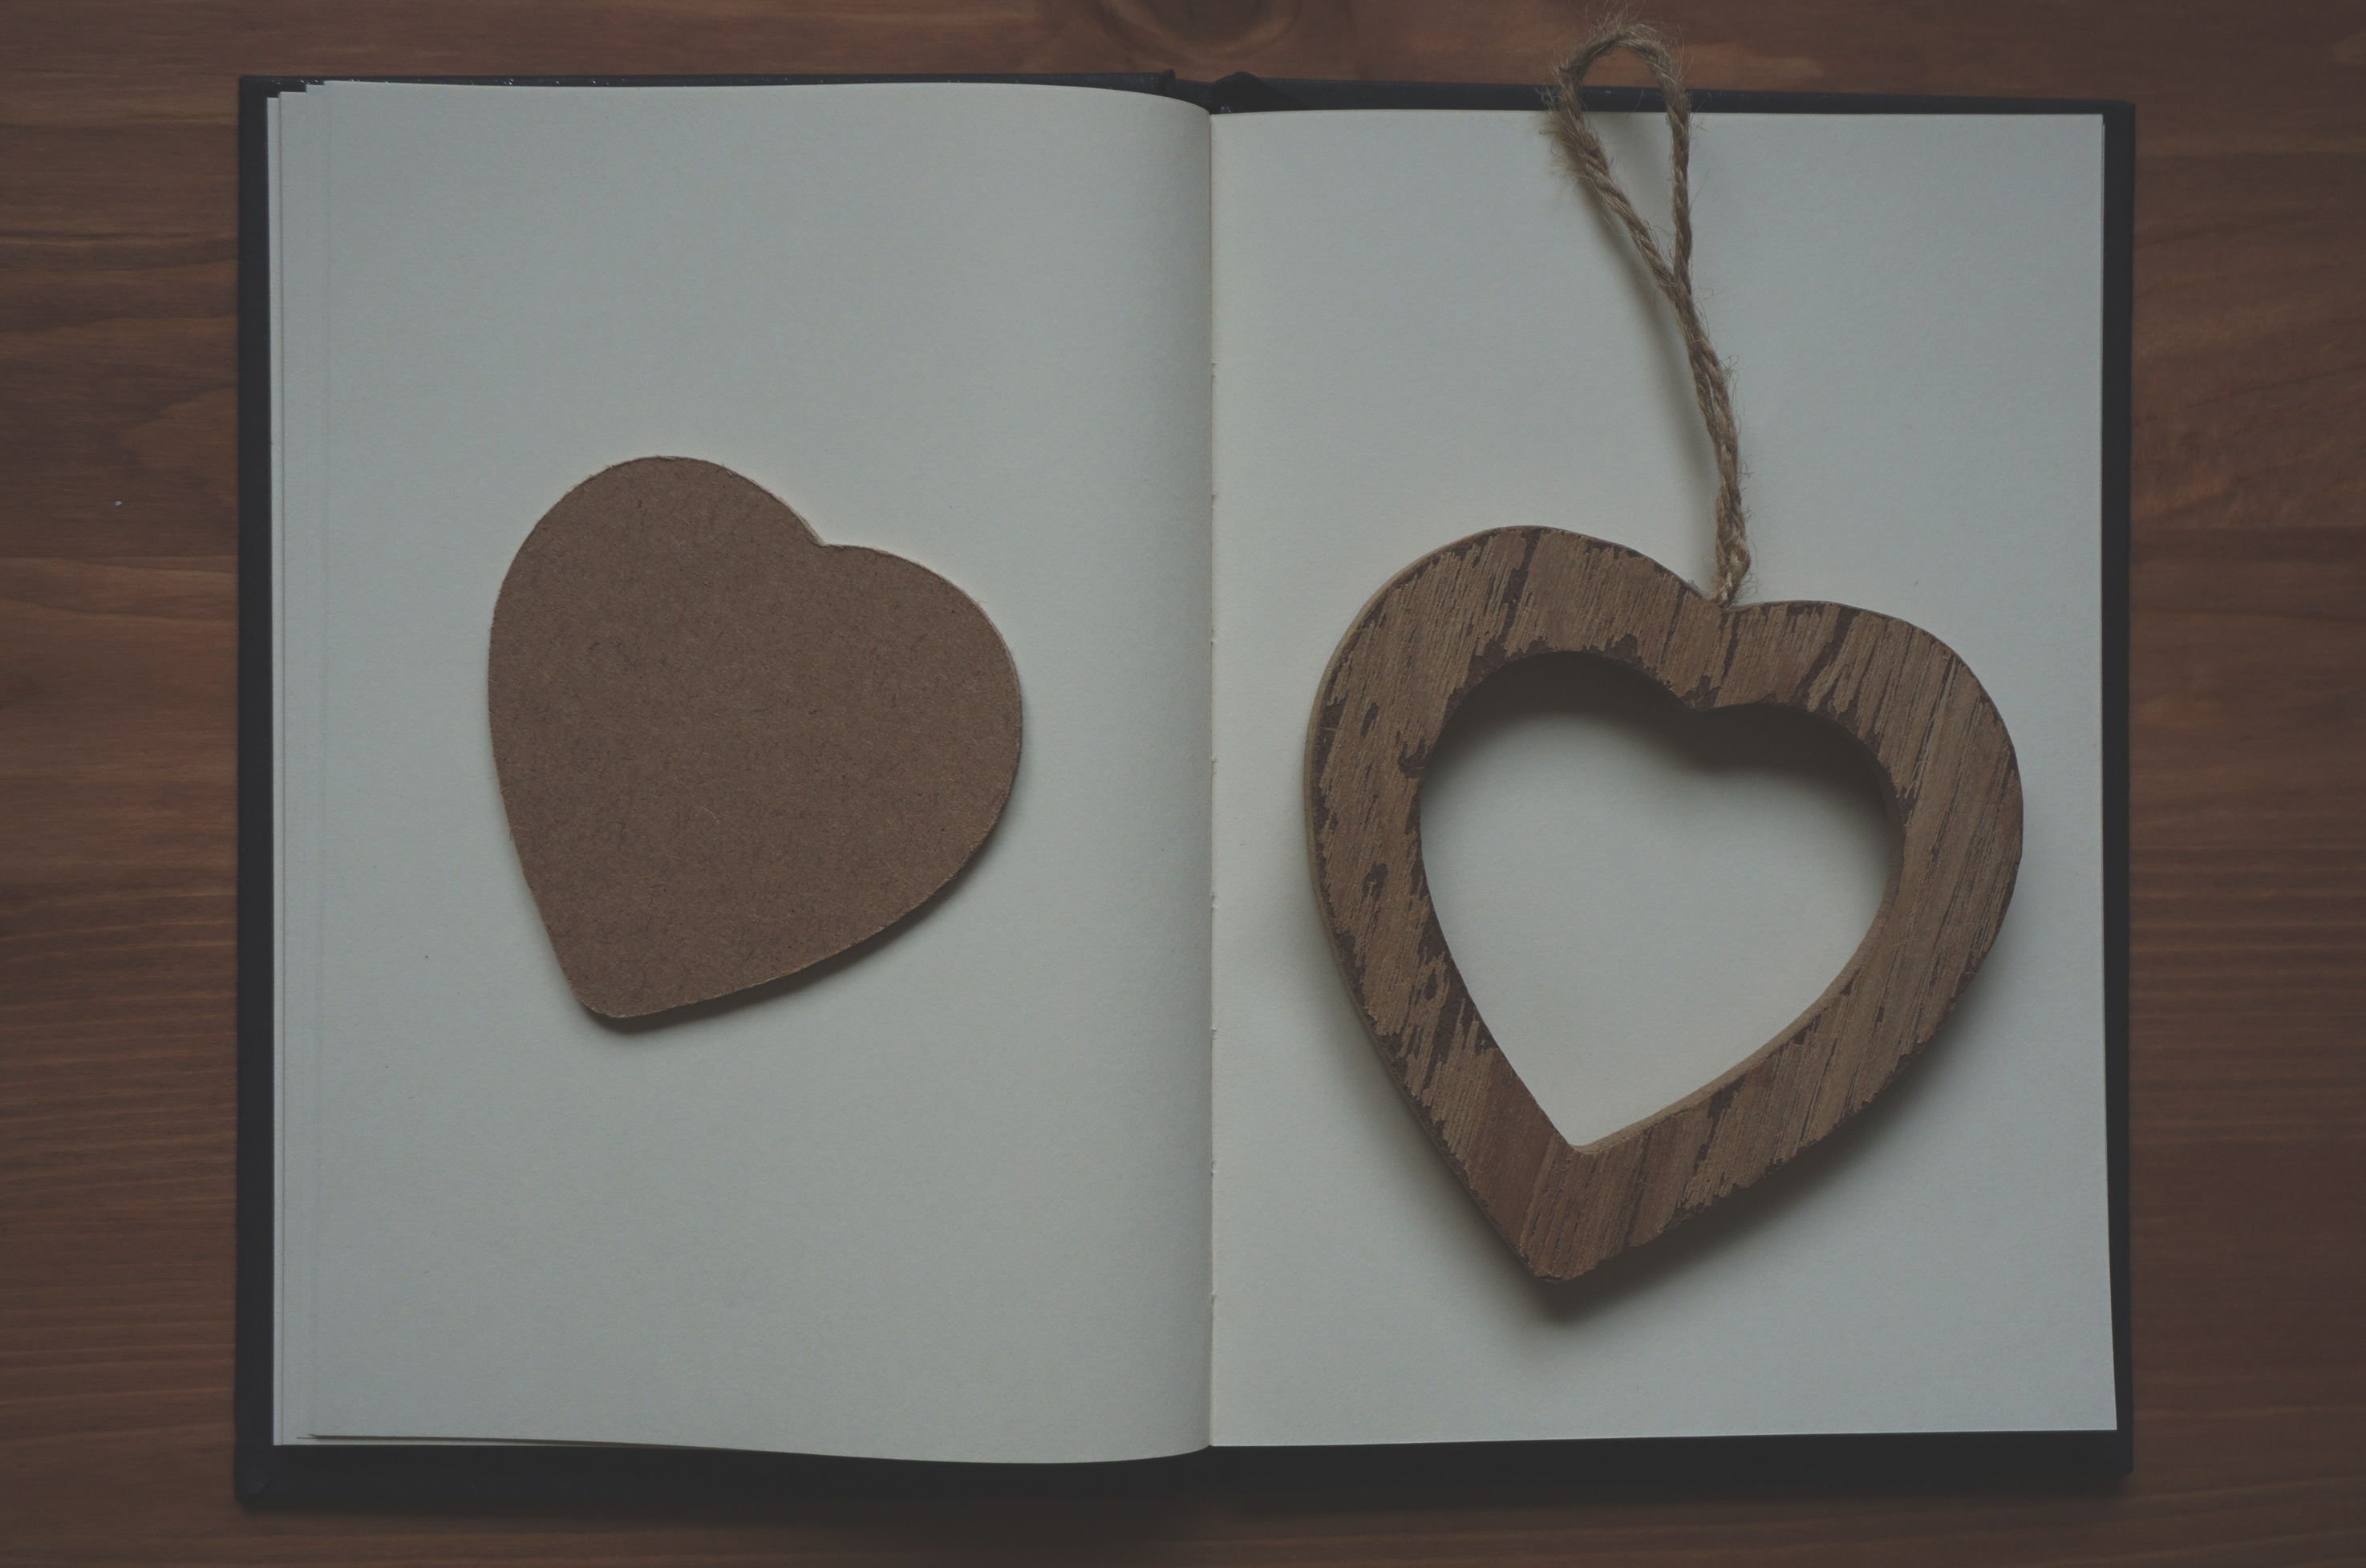 Heart on valentines day photo